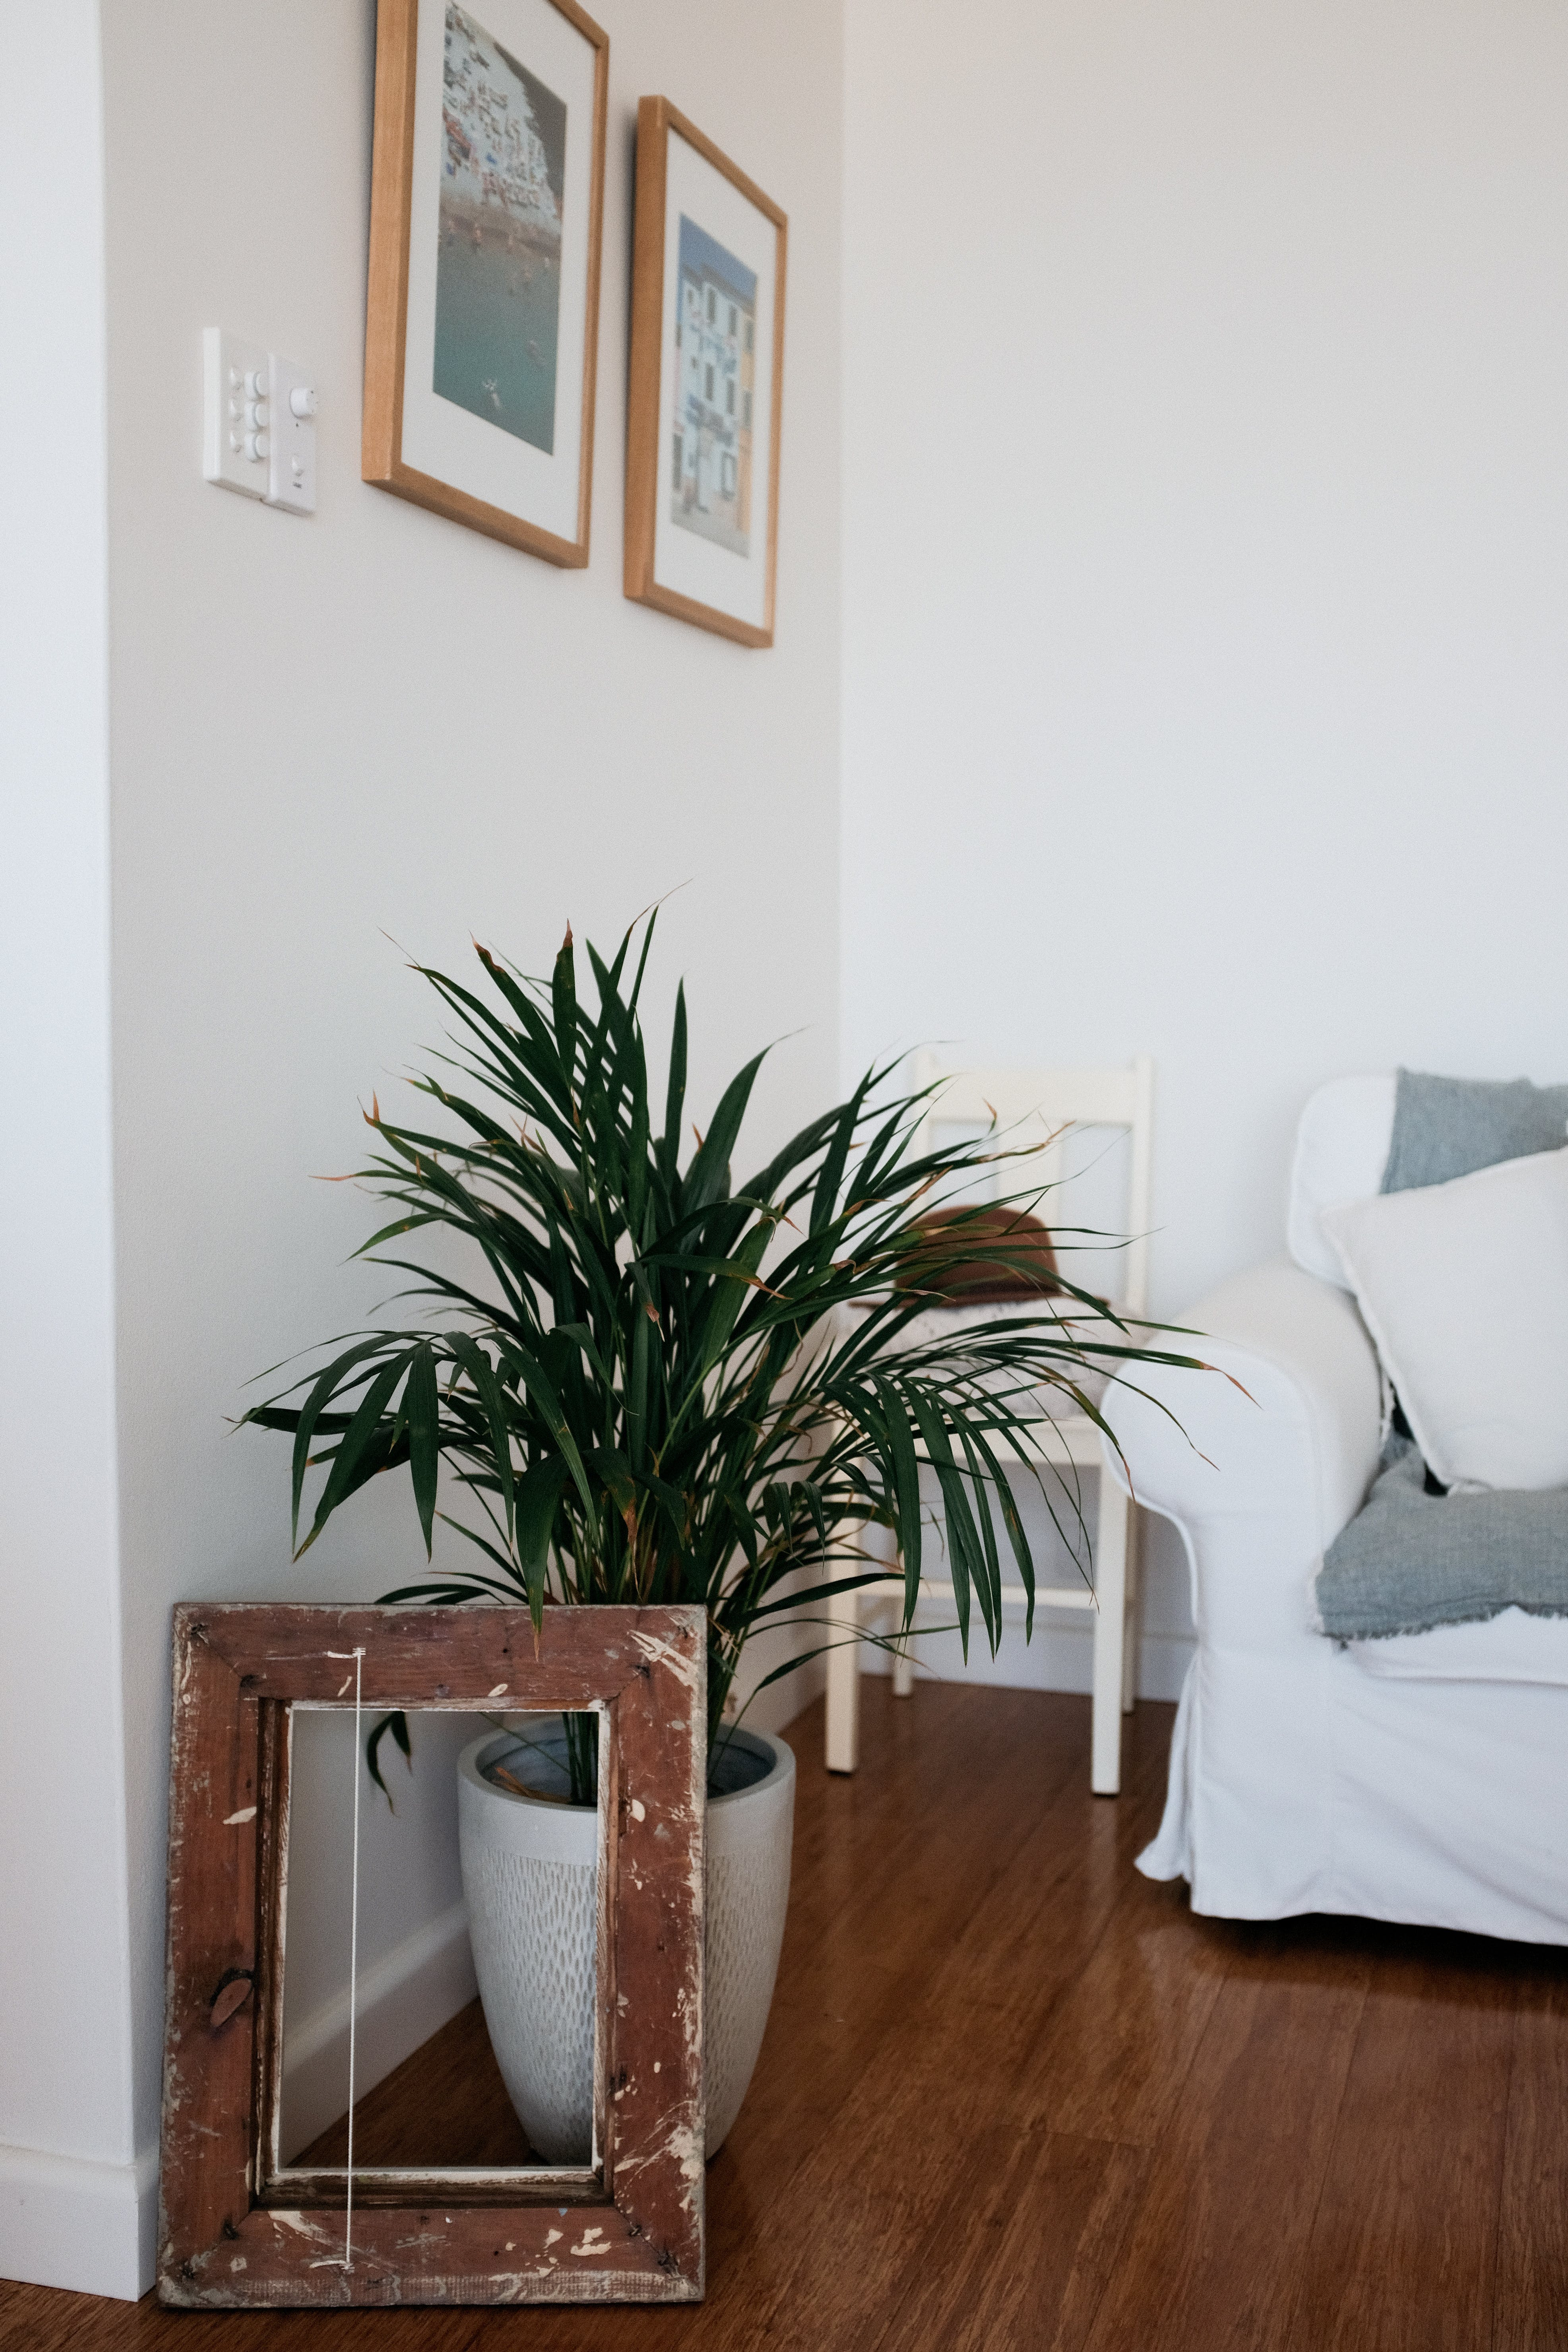 Square Brown Photo Frame Beside Green Leafed Plant and Wall